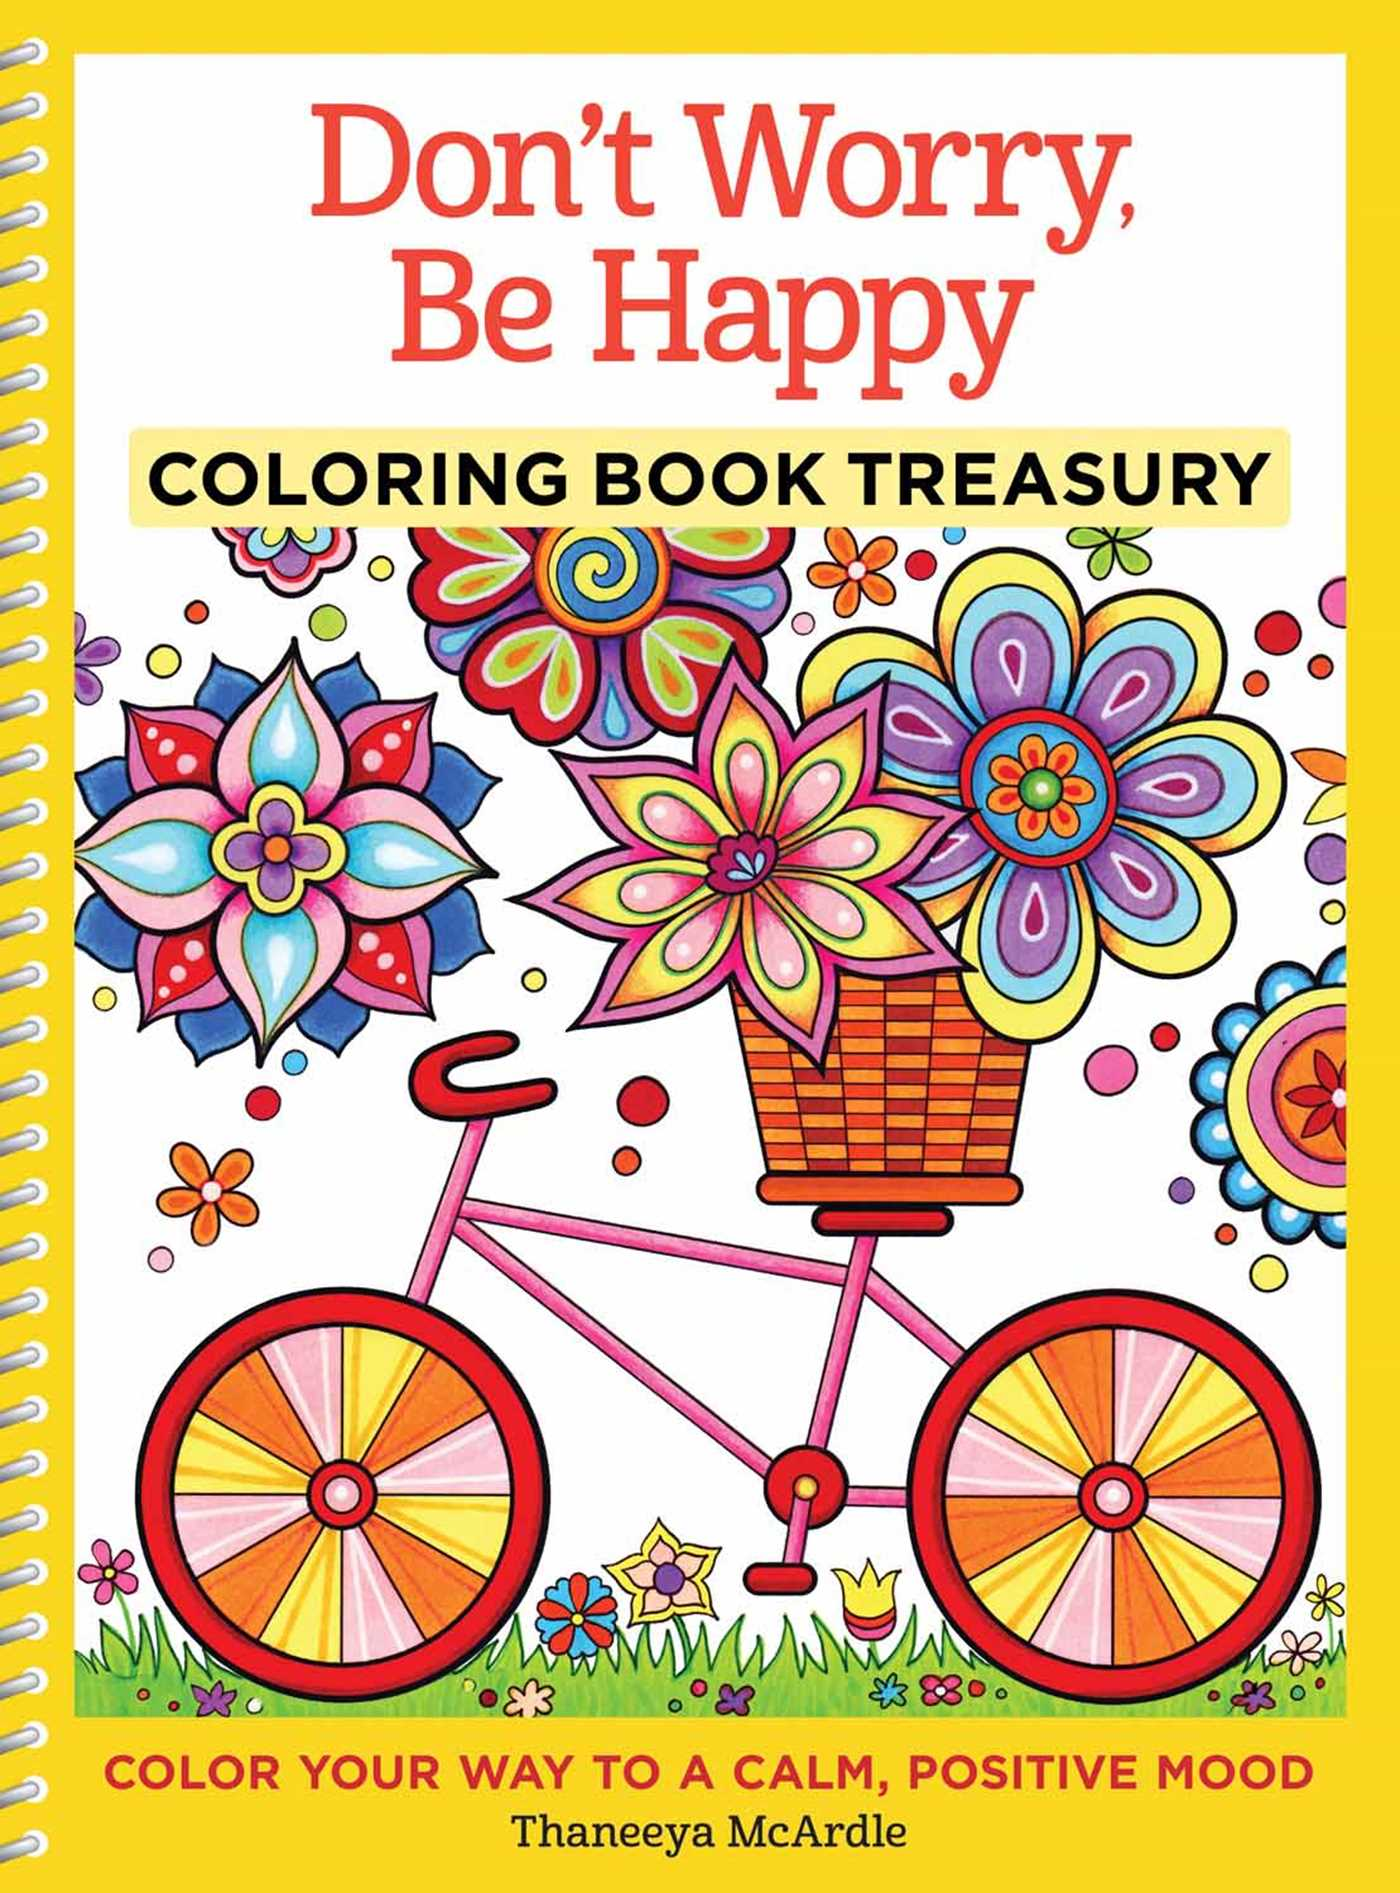 Book Cover Image Jpg Dont Worry Be Happy Coloring Treasury